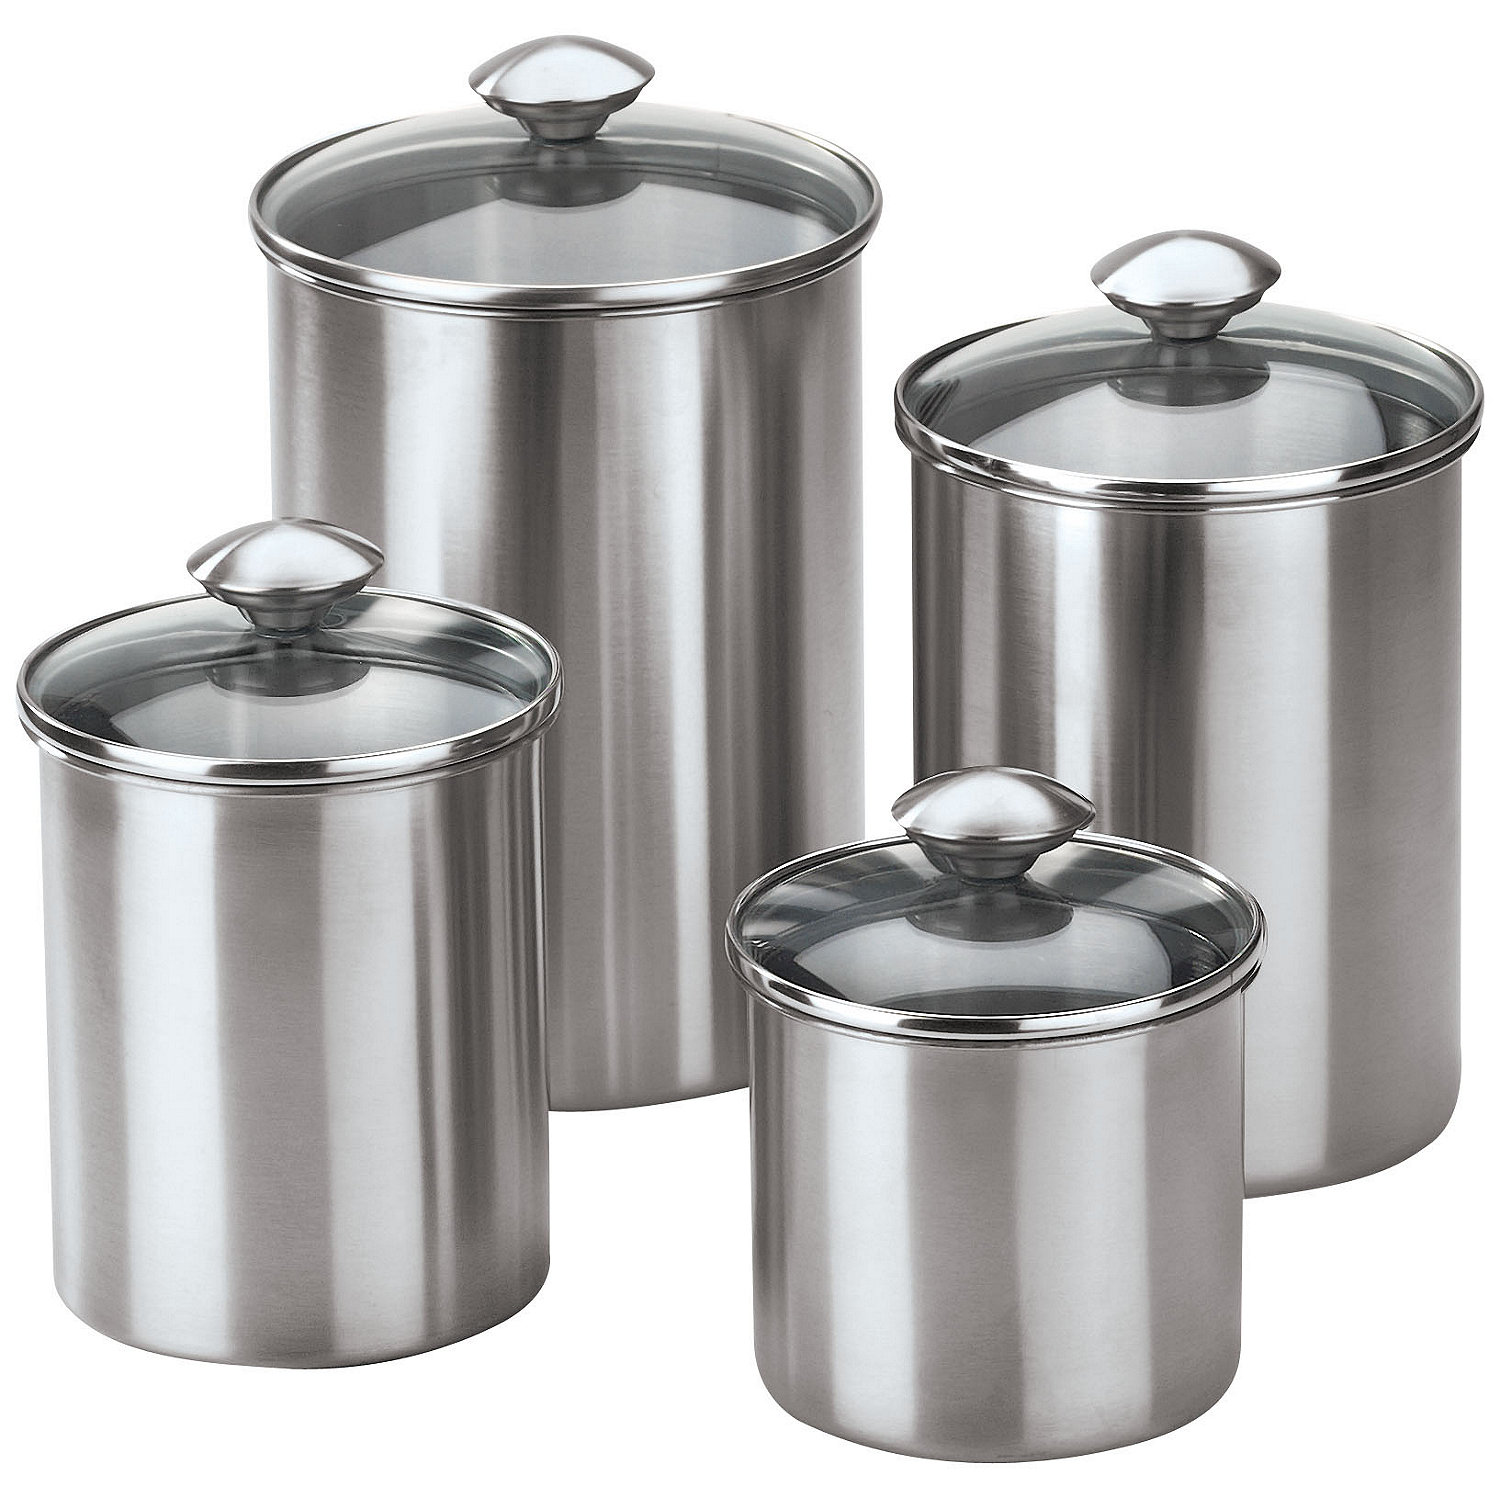 4 piece stainless steel modern kitchen canister set ebay for Kitchen kitchen set